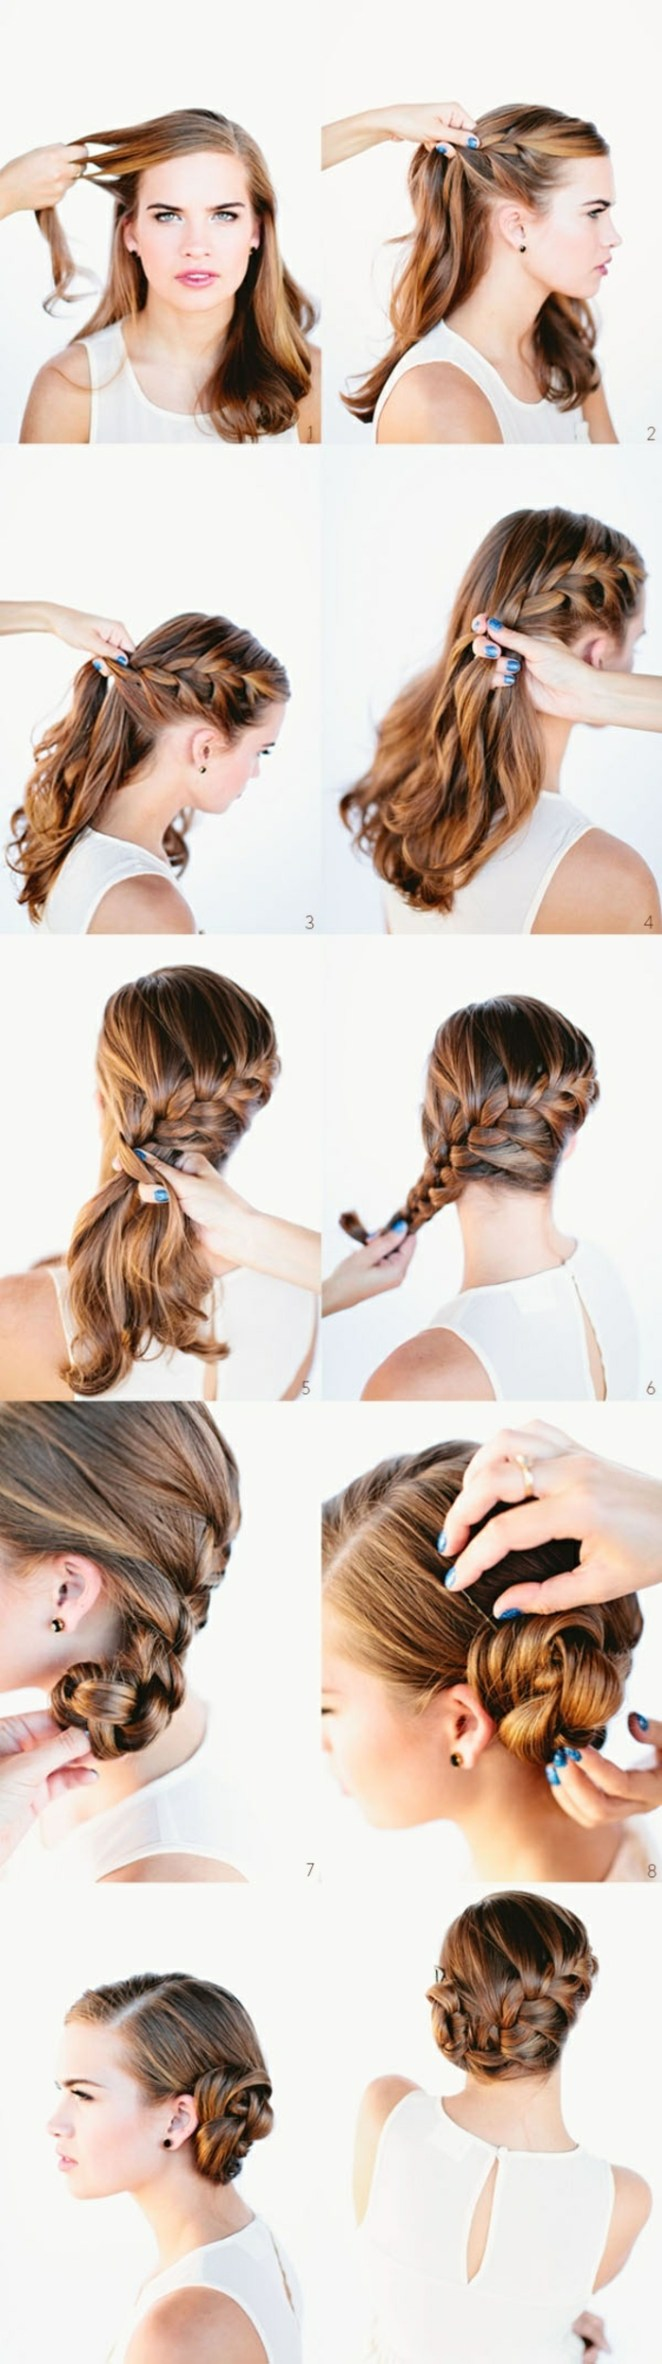 instructions on how to make a great hairstyle for long hair, beautiful hairstyles for long hair